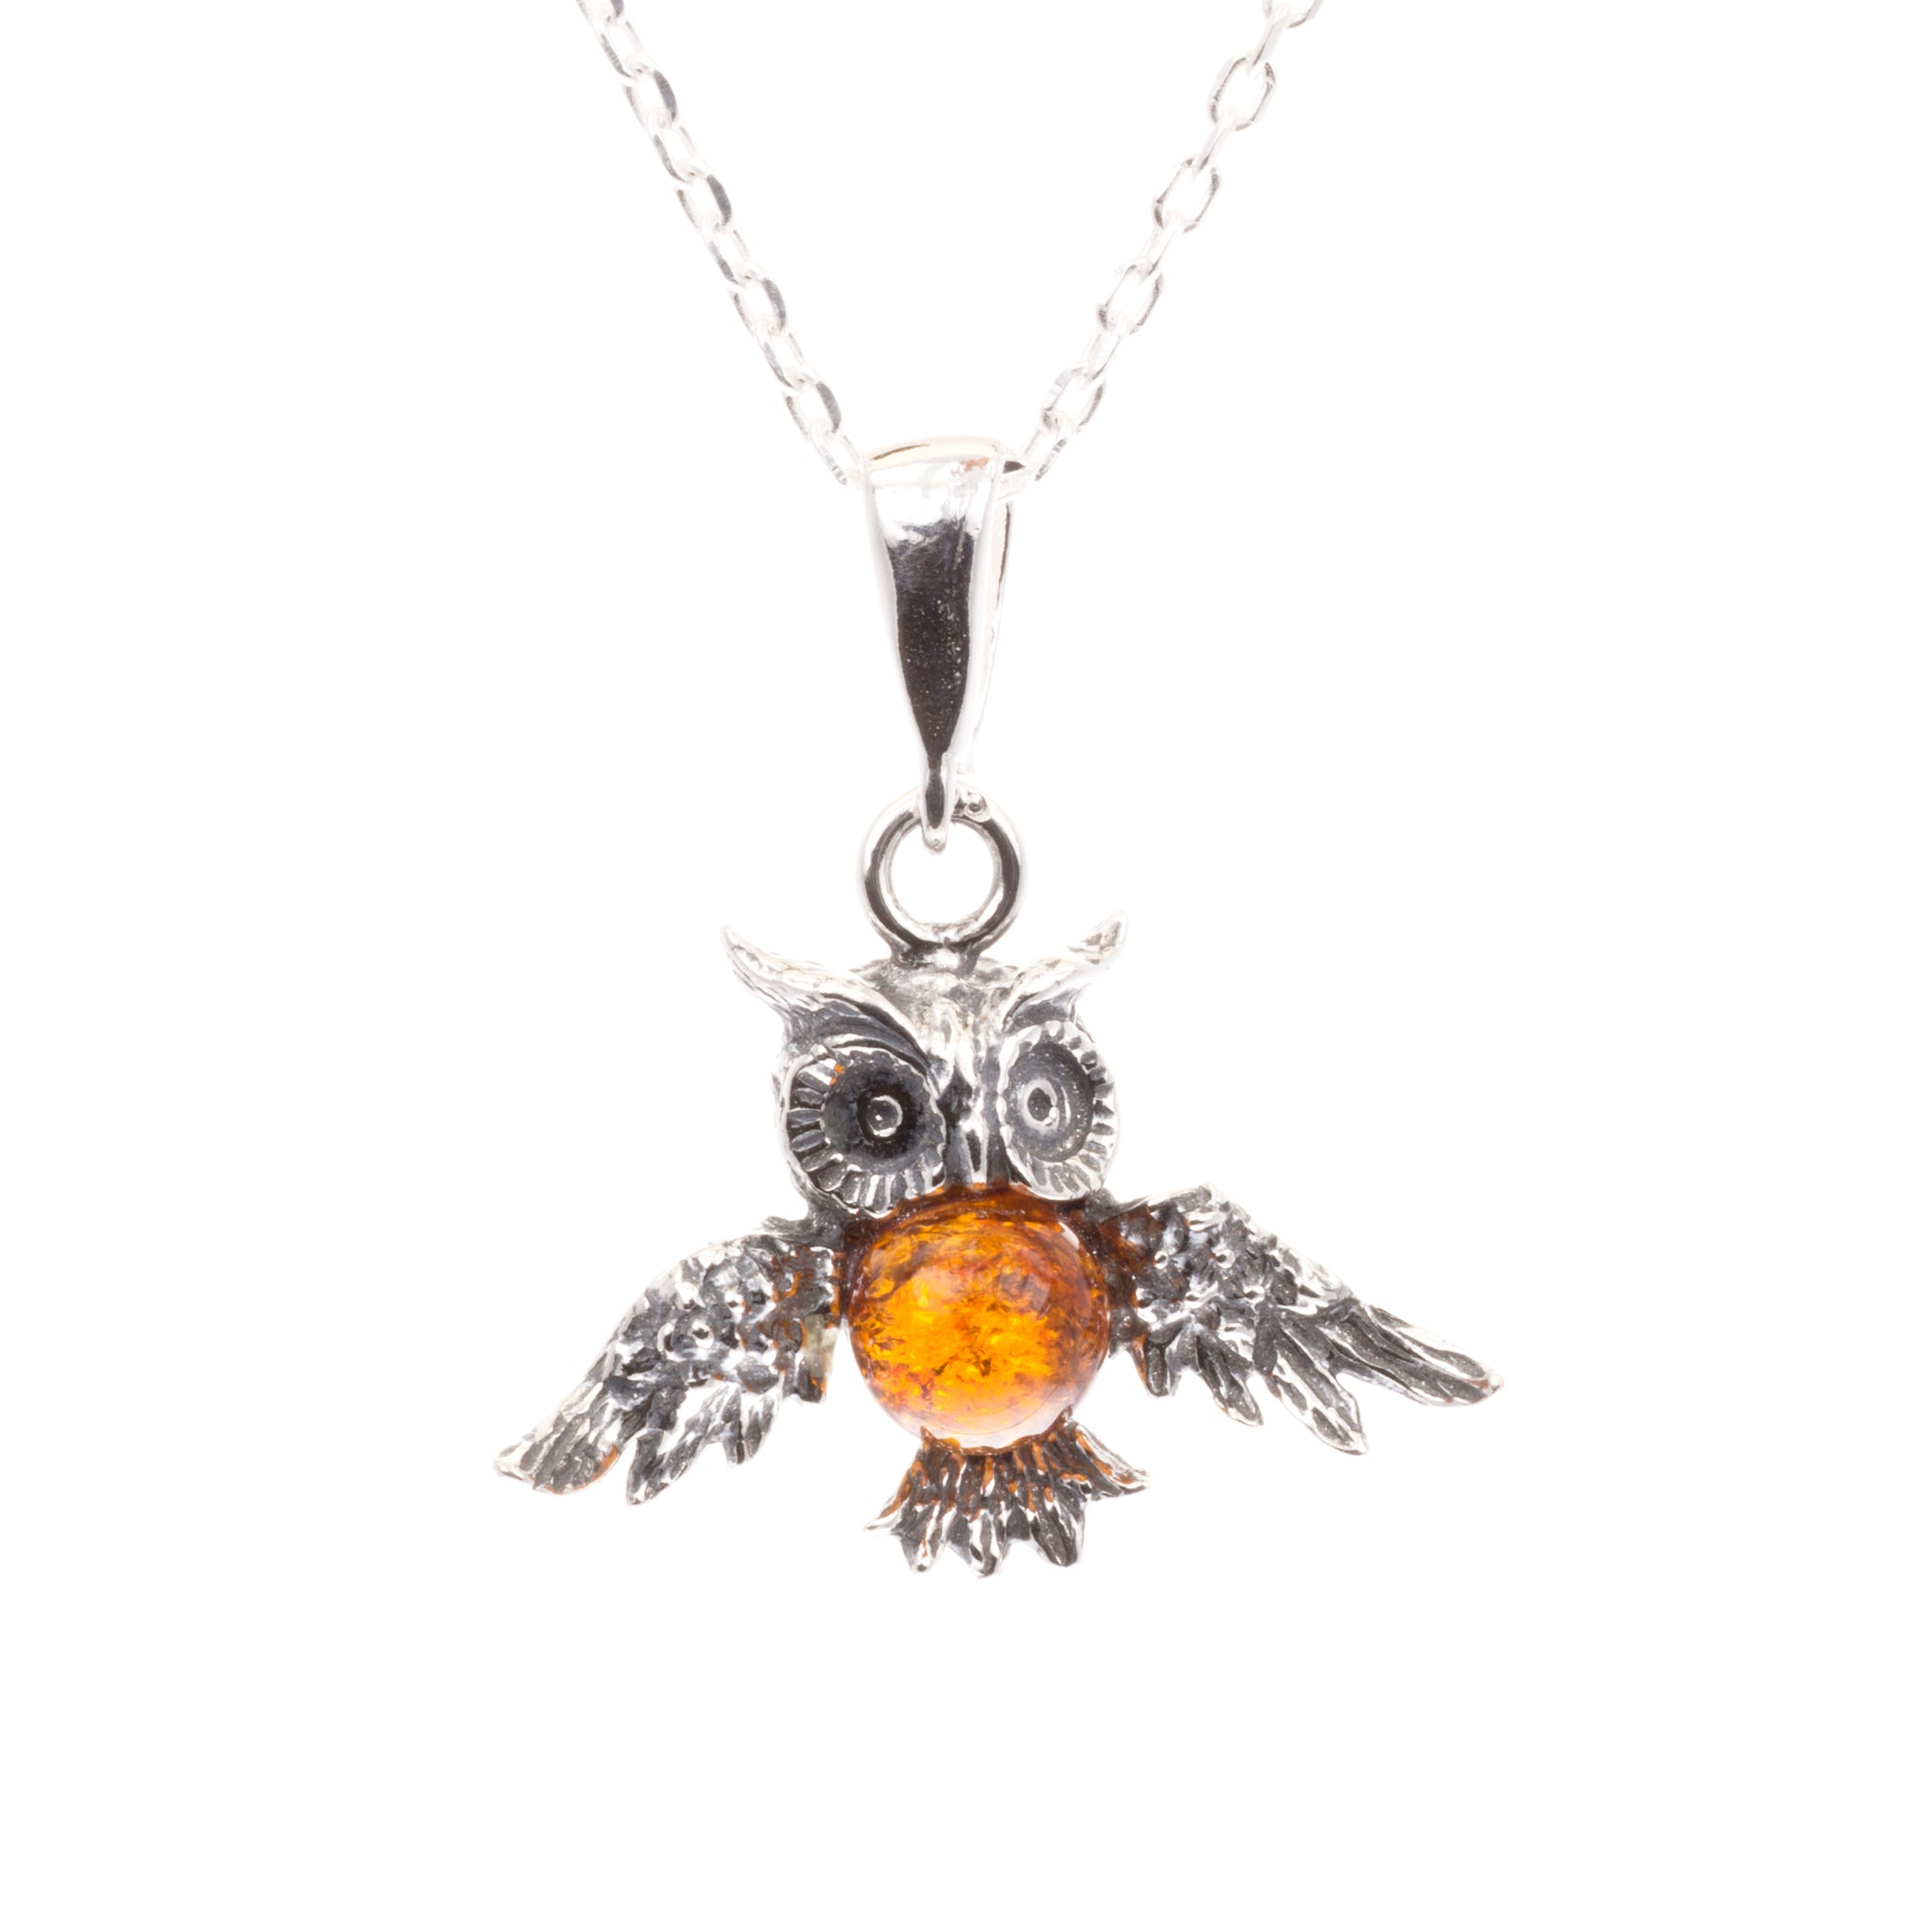 hi rhodium rickis res clear pendant owl crystal necklace